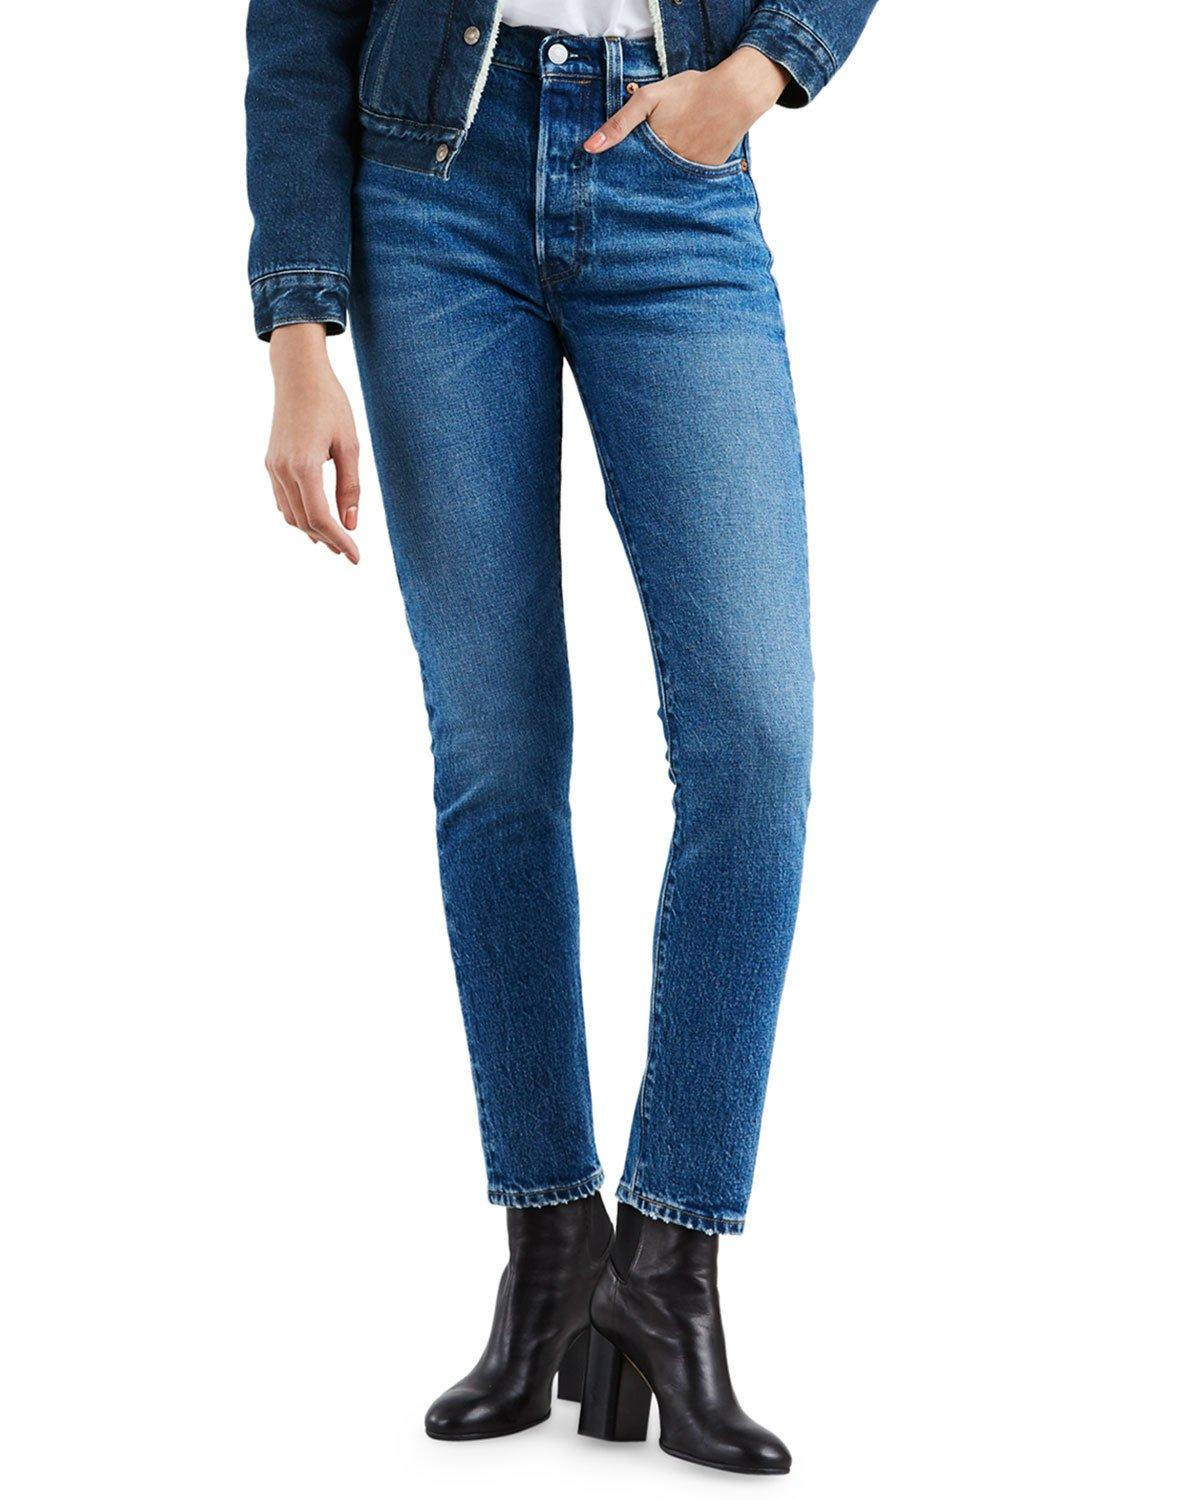 a108a51625e Levi's 501 Skinny Stretch Jeans In We The People   ModeSens